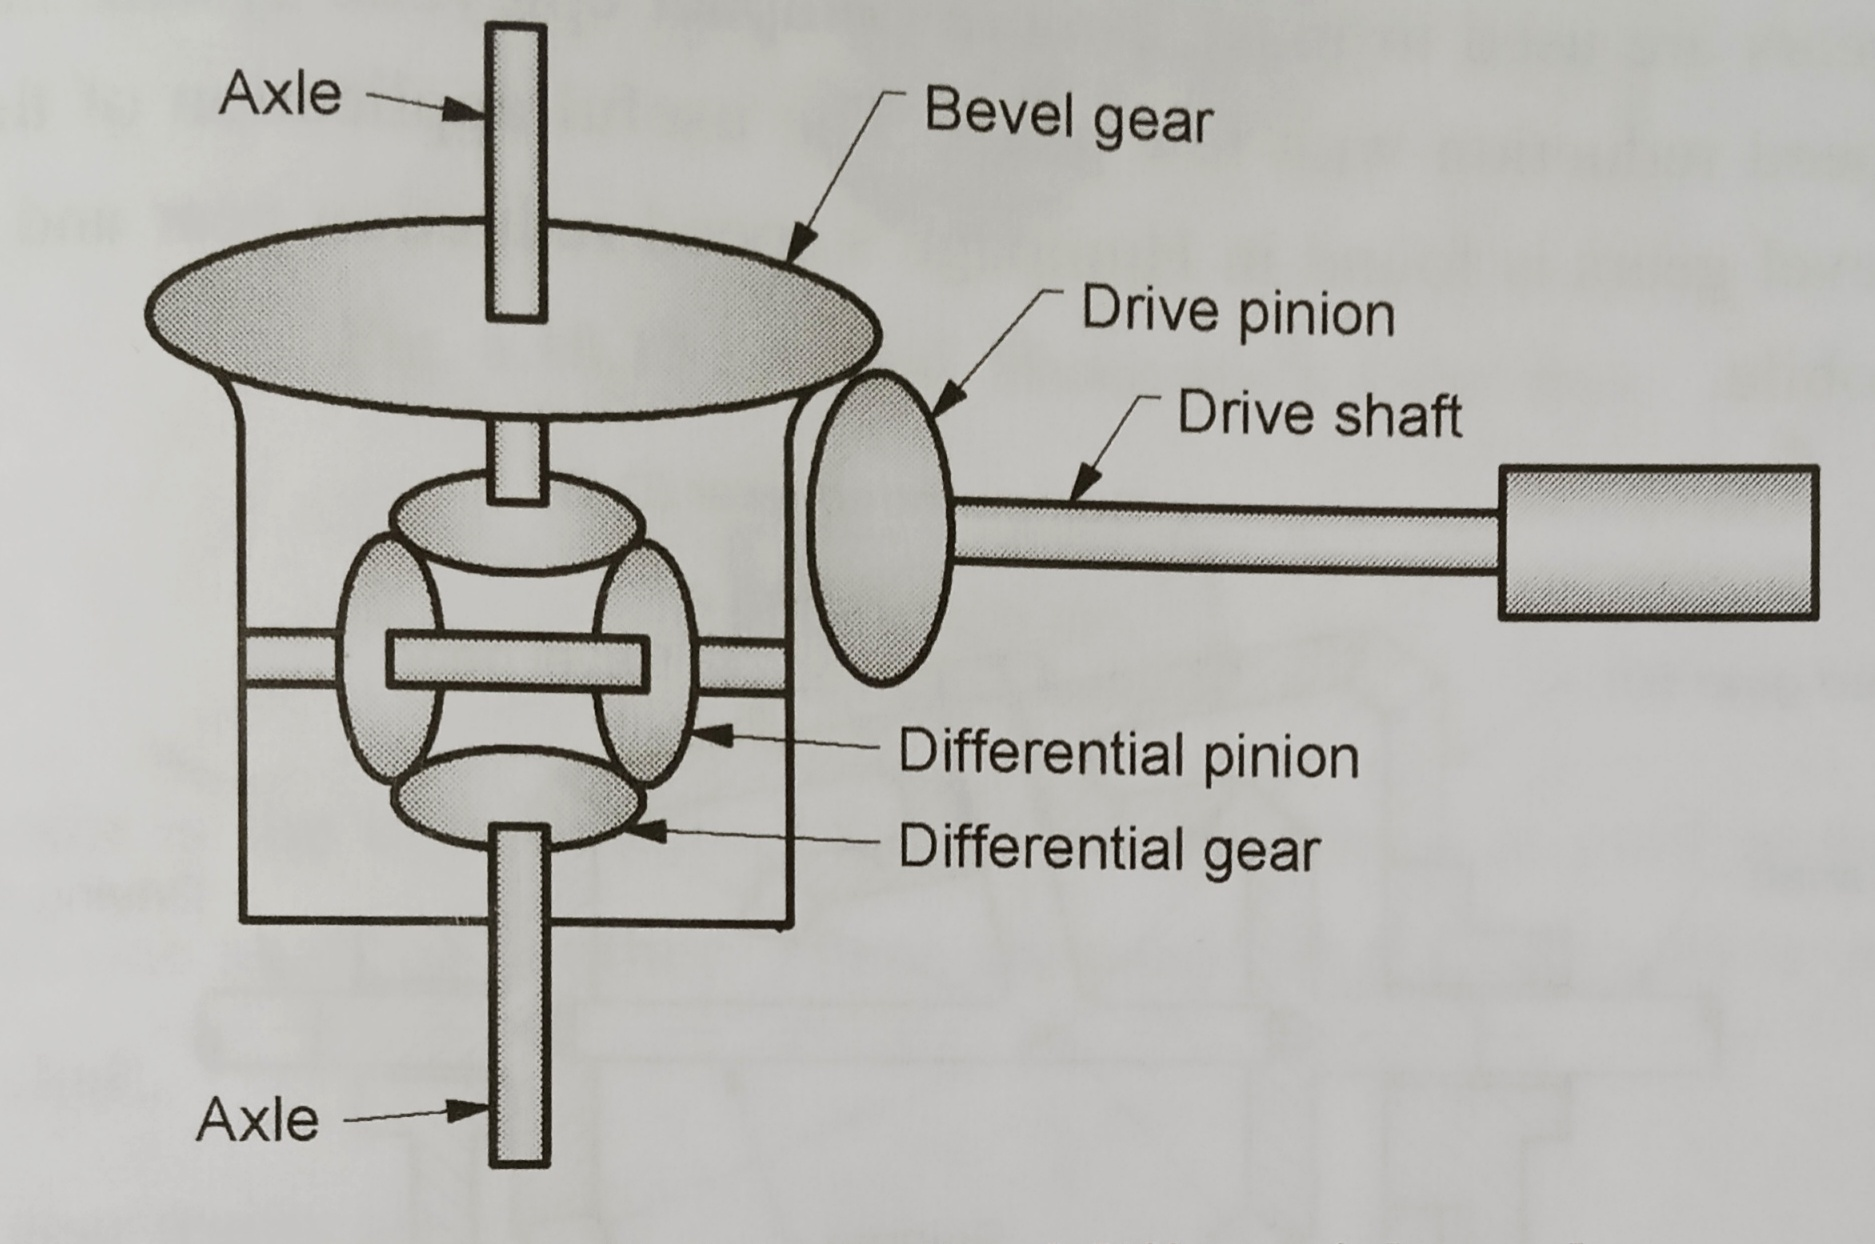 hight resolution of 1 1 schematic of differential gearbox